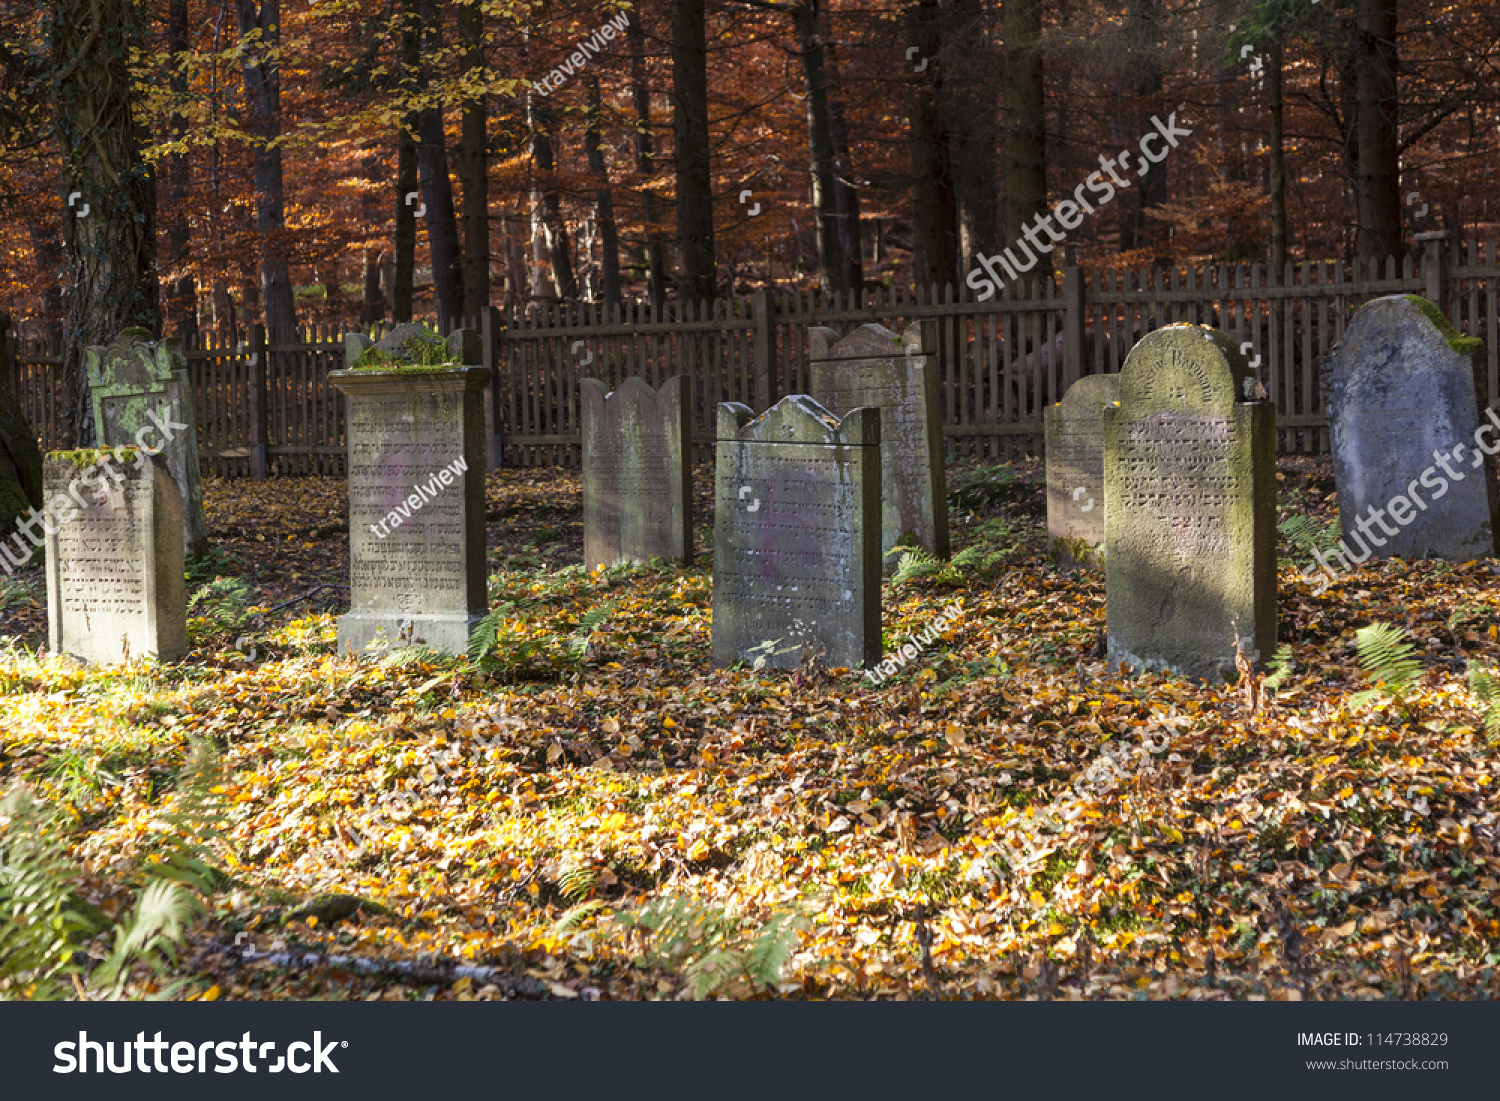 cemetery in the forest - photo #41